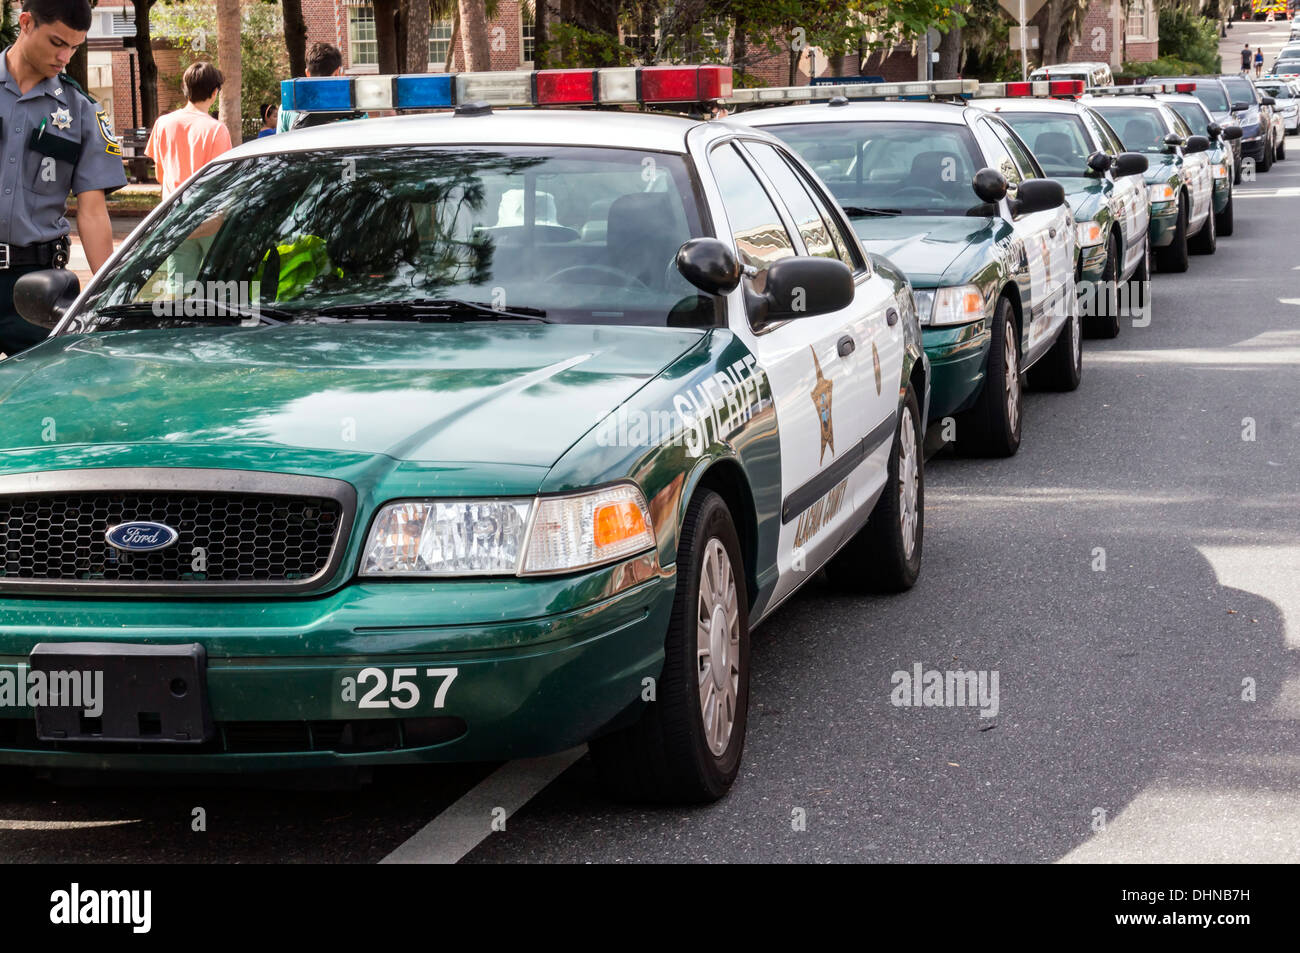 Line of police cars or cruisers parallel parked in front of the stadium on the University of Florida campus in Gainesville, Flor - Stock Image